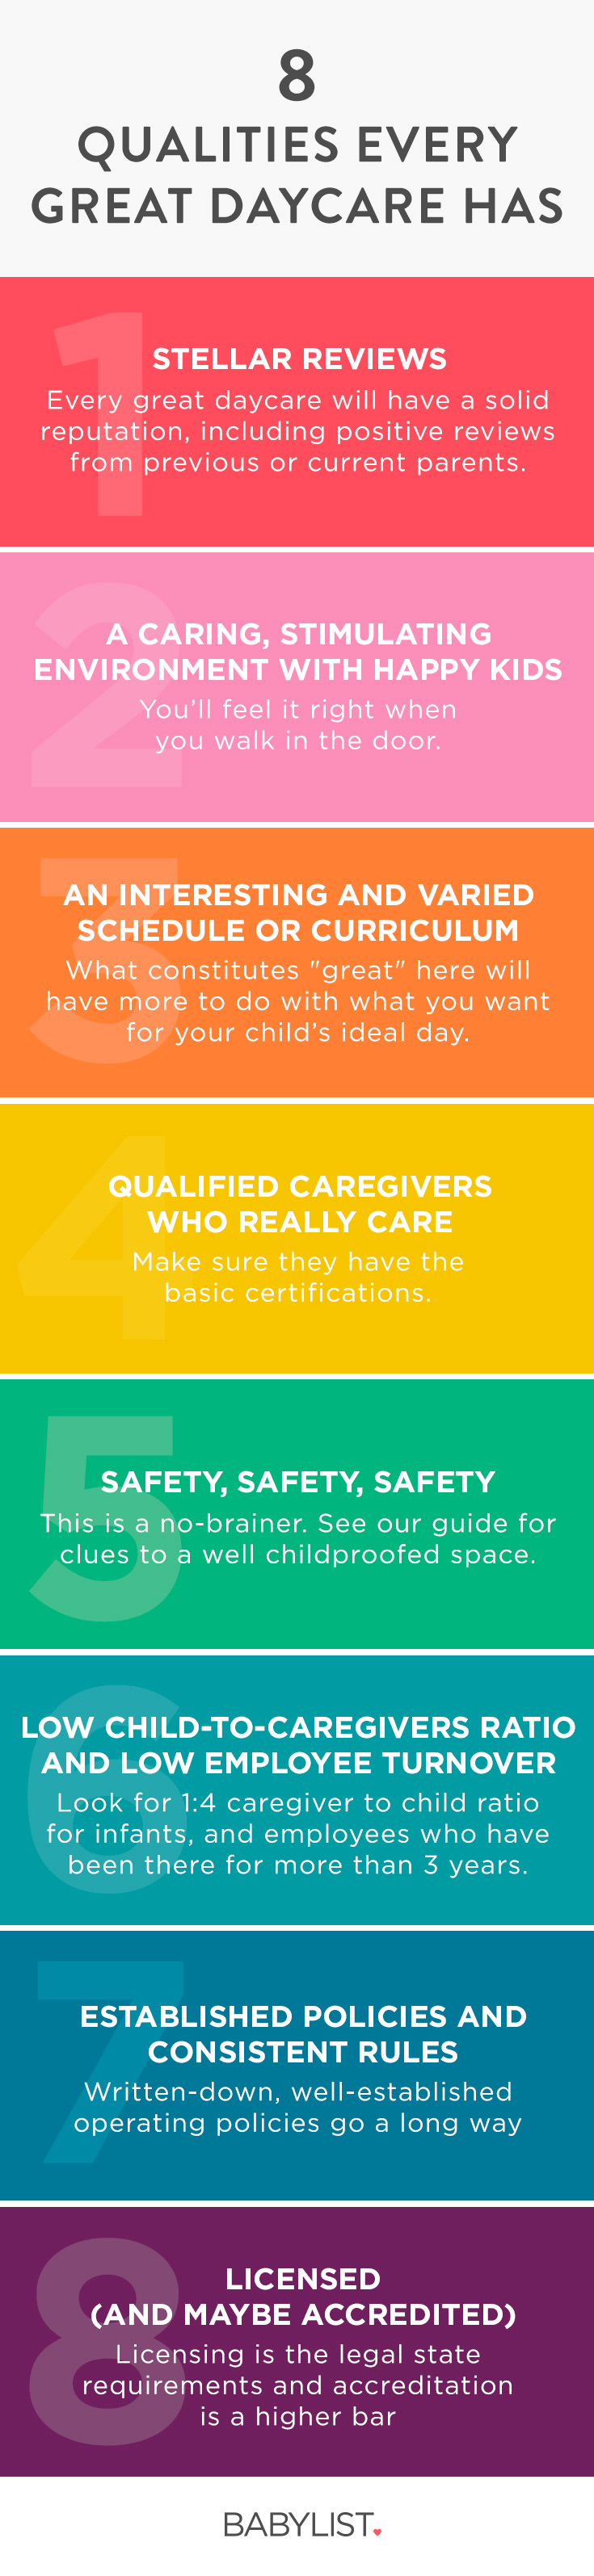 The best daycare has a magical combination of everything on this list, so you feel secure and happy to leave your child there every day.